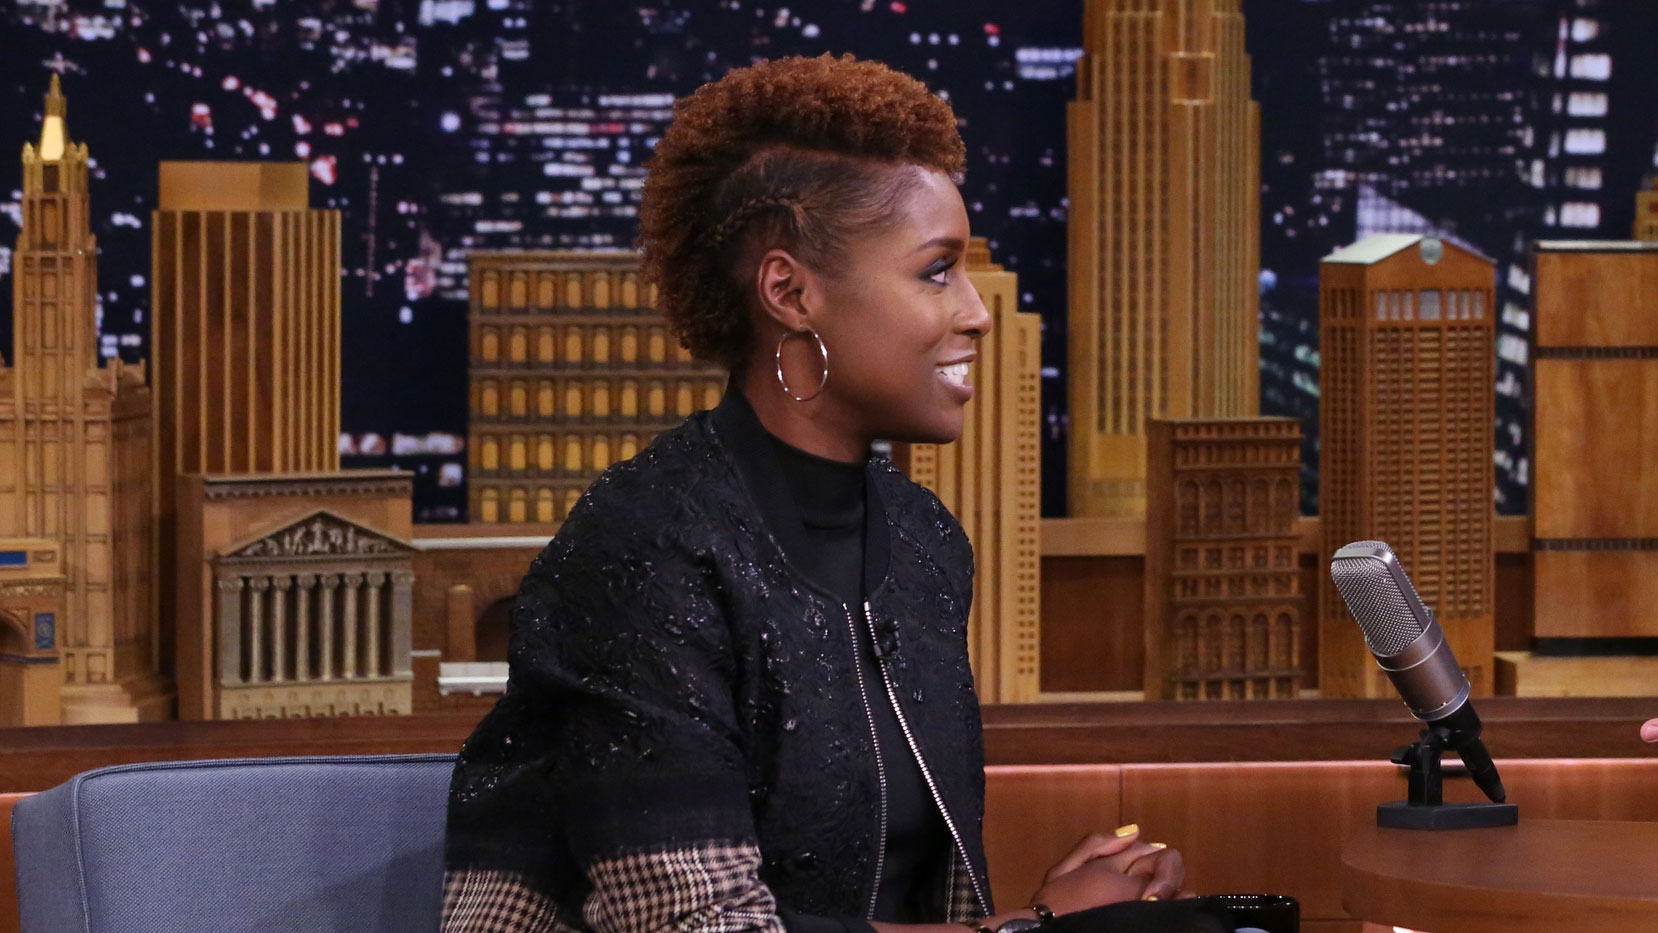 Issa Rae Got Awkward Meeting Jimmy Backstage The Tonight Show